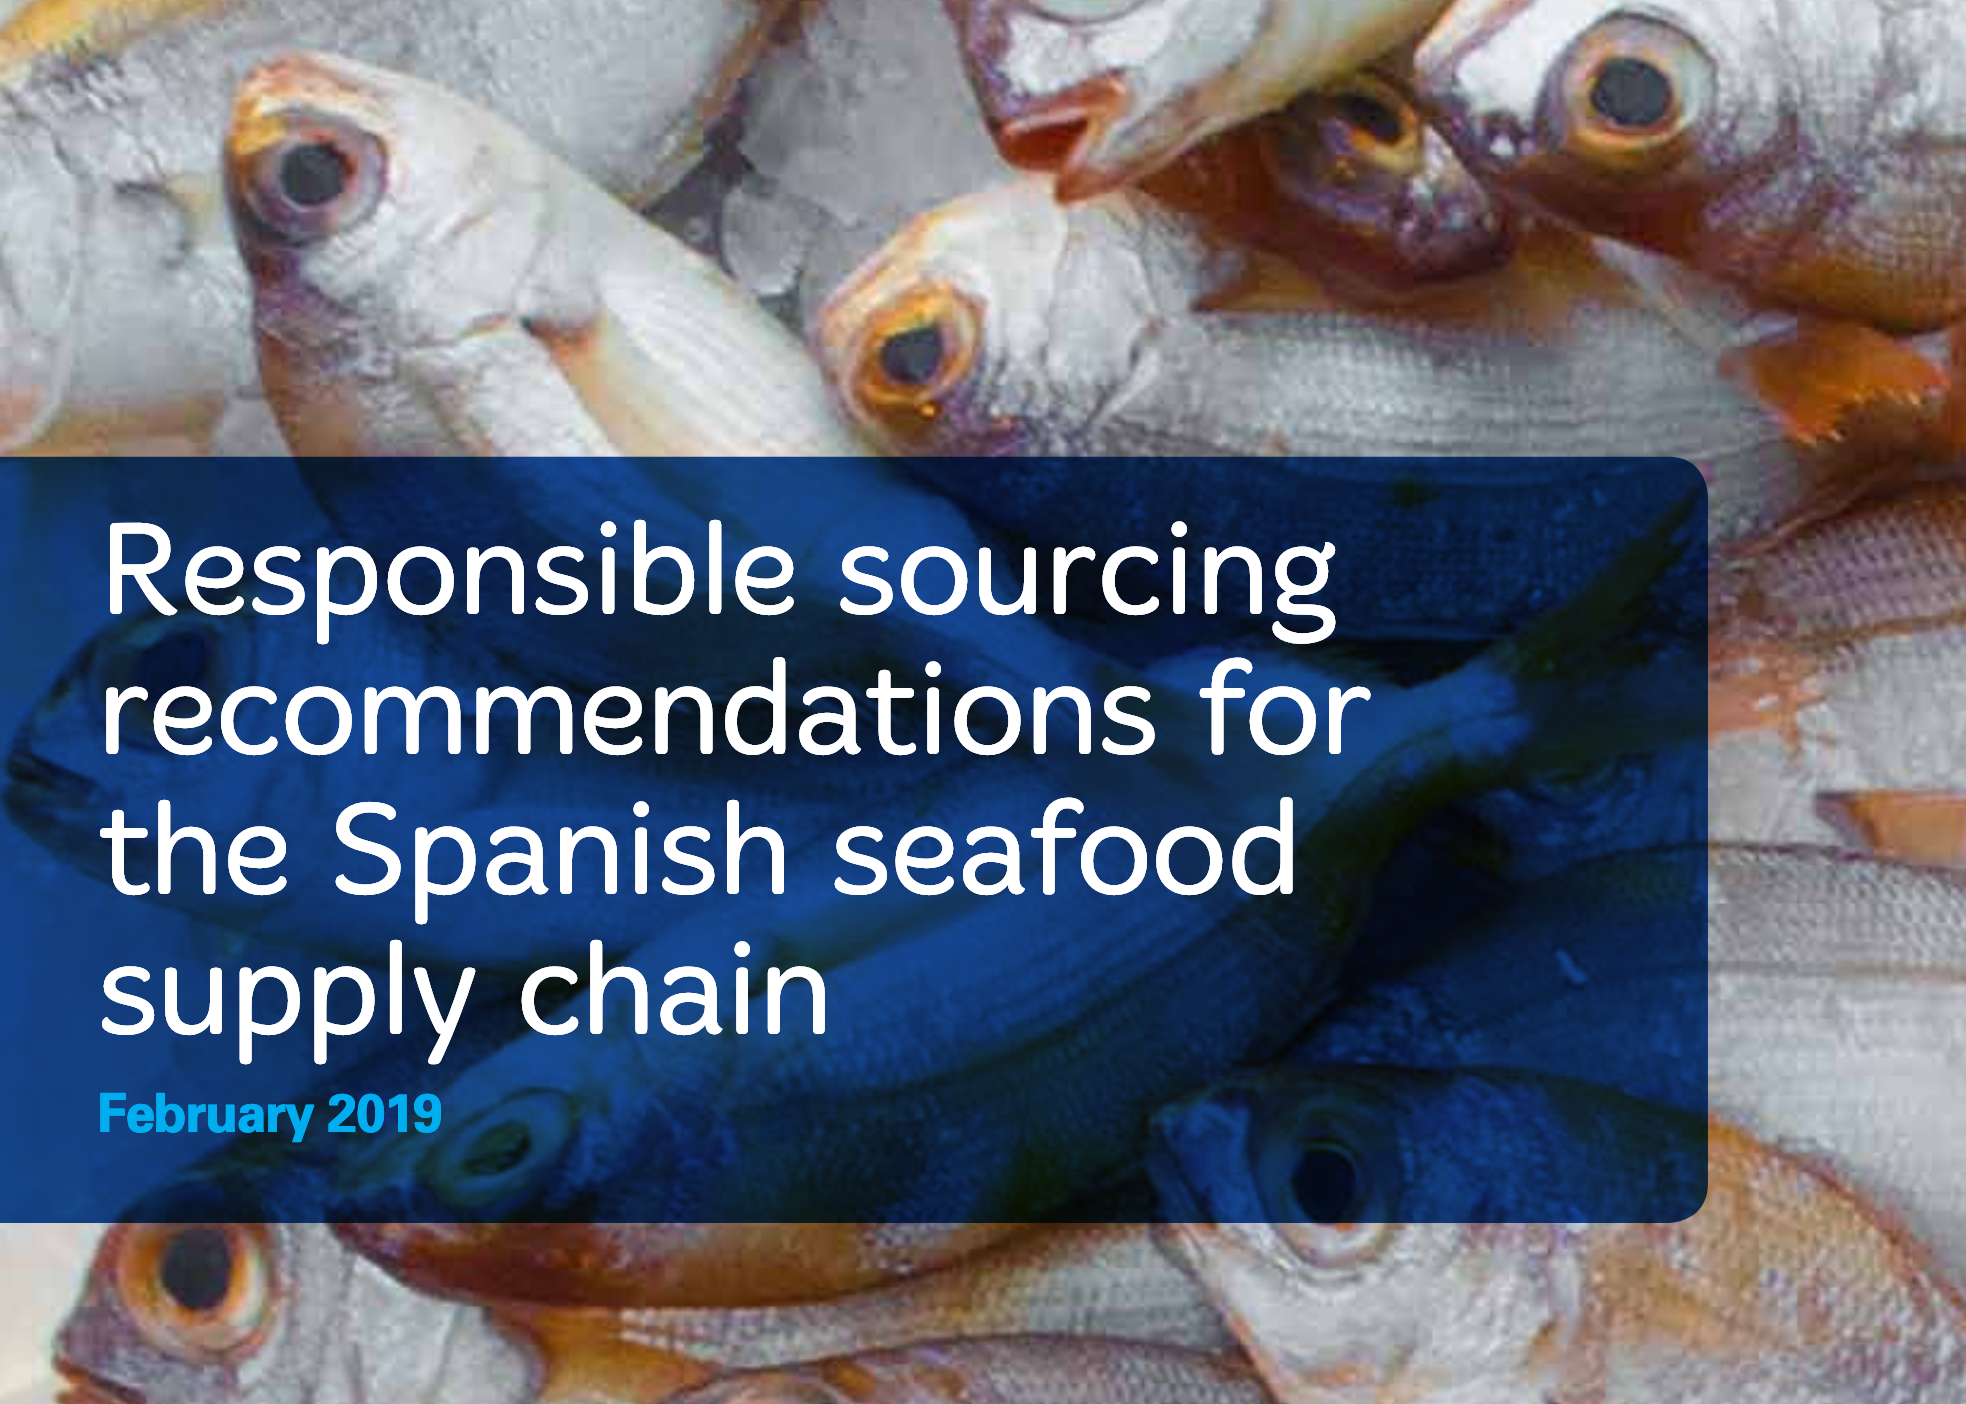 New roadmap targets responsible sourcing improvements in Spanish seafood industry